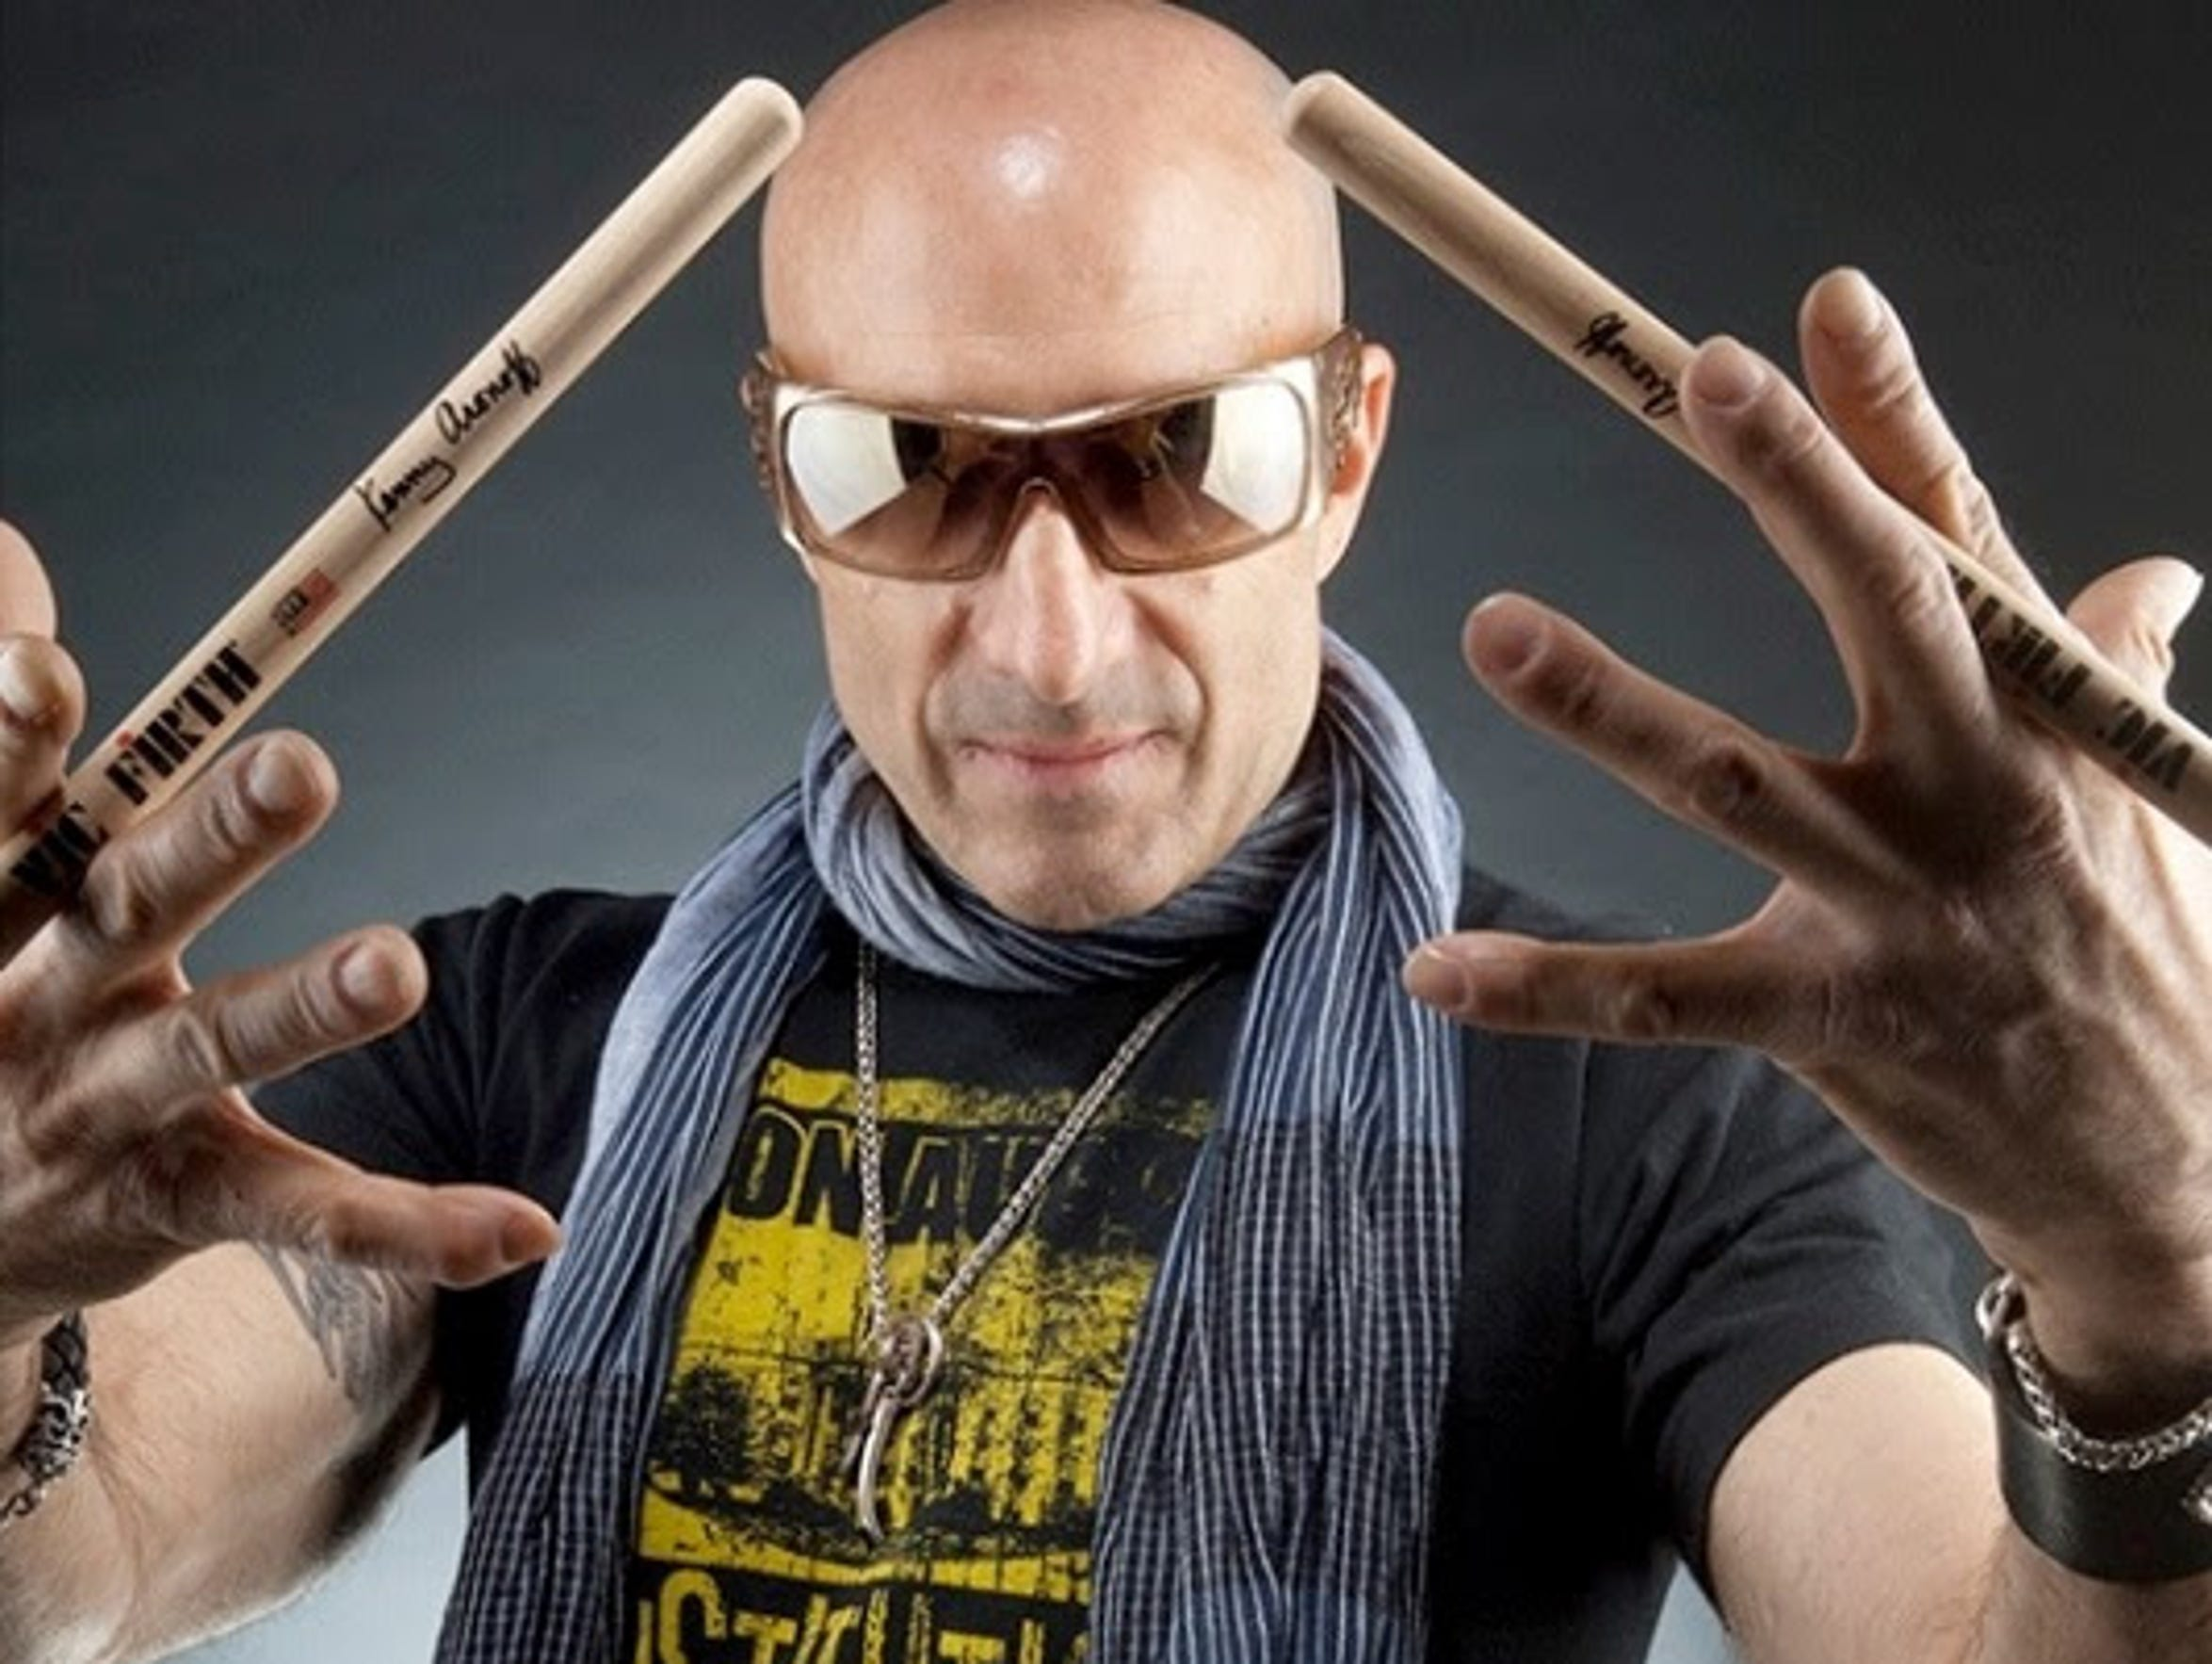 Kenny Aronoff has played drums on tour with has toured